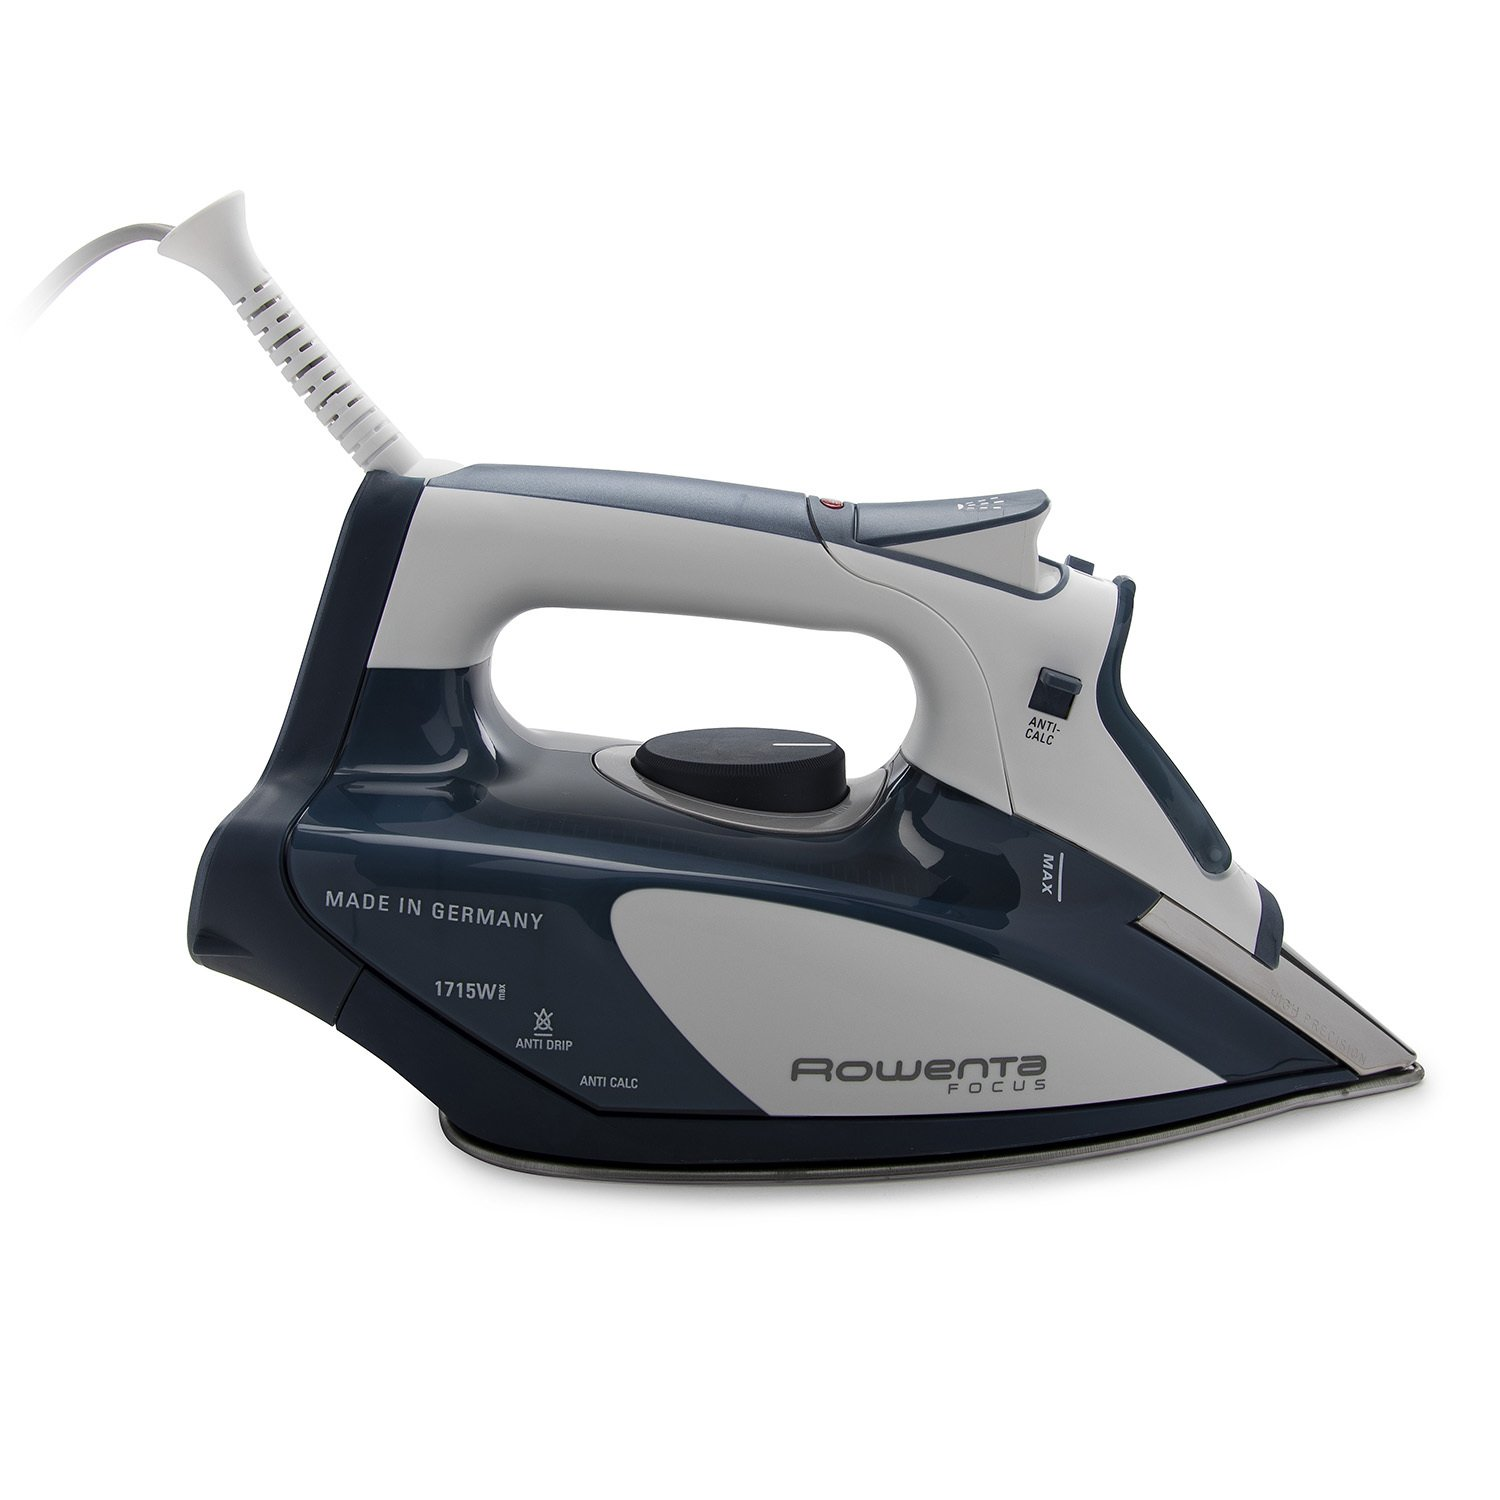 Rowenta DW5184 Focus 1700-Watt Micro Steam Iron with Stainless Steel Soleplate, 400 -Hole, Blue